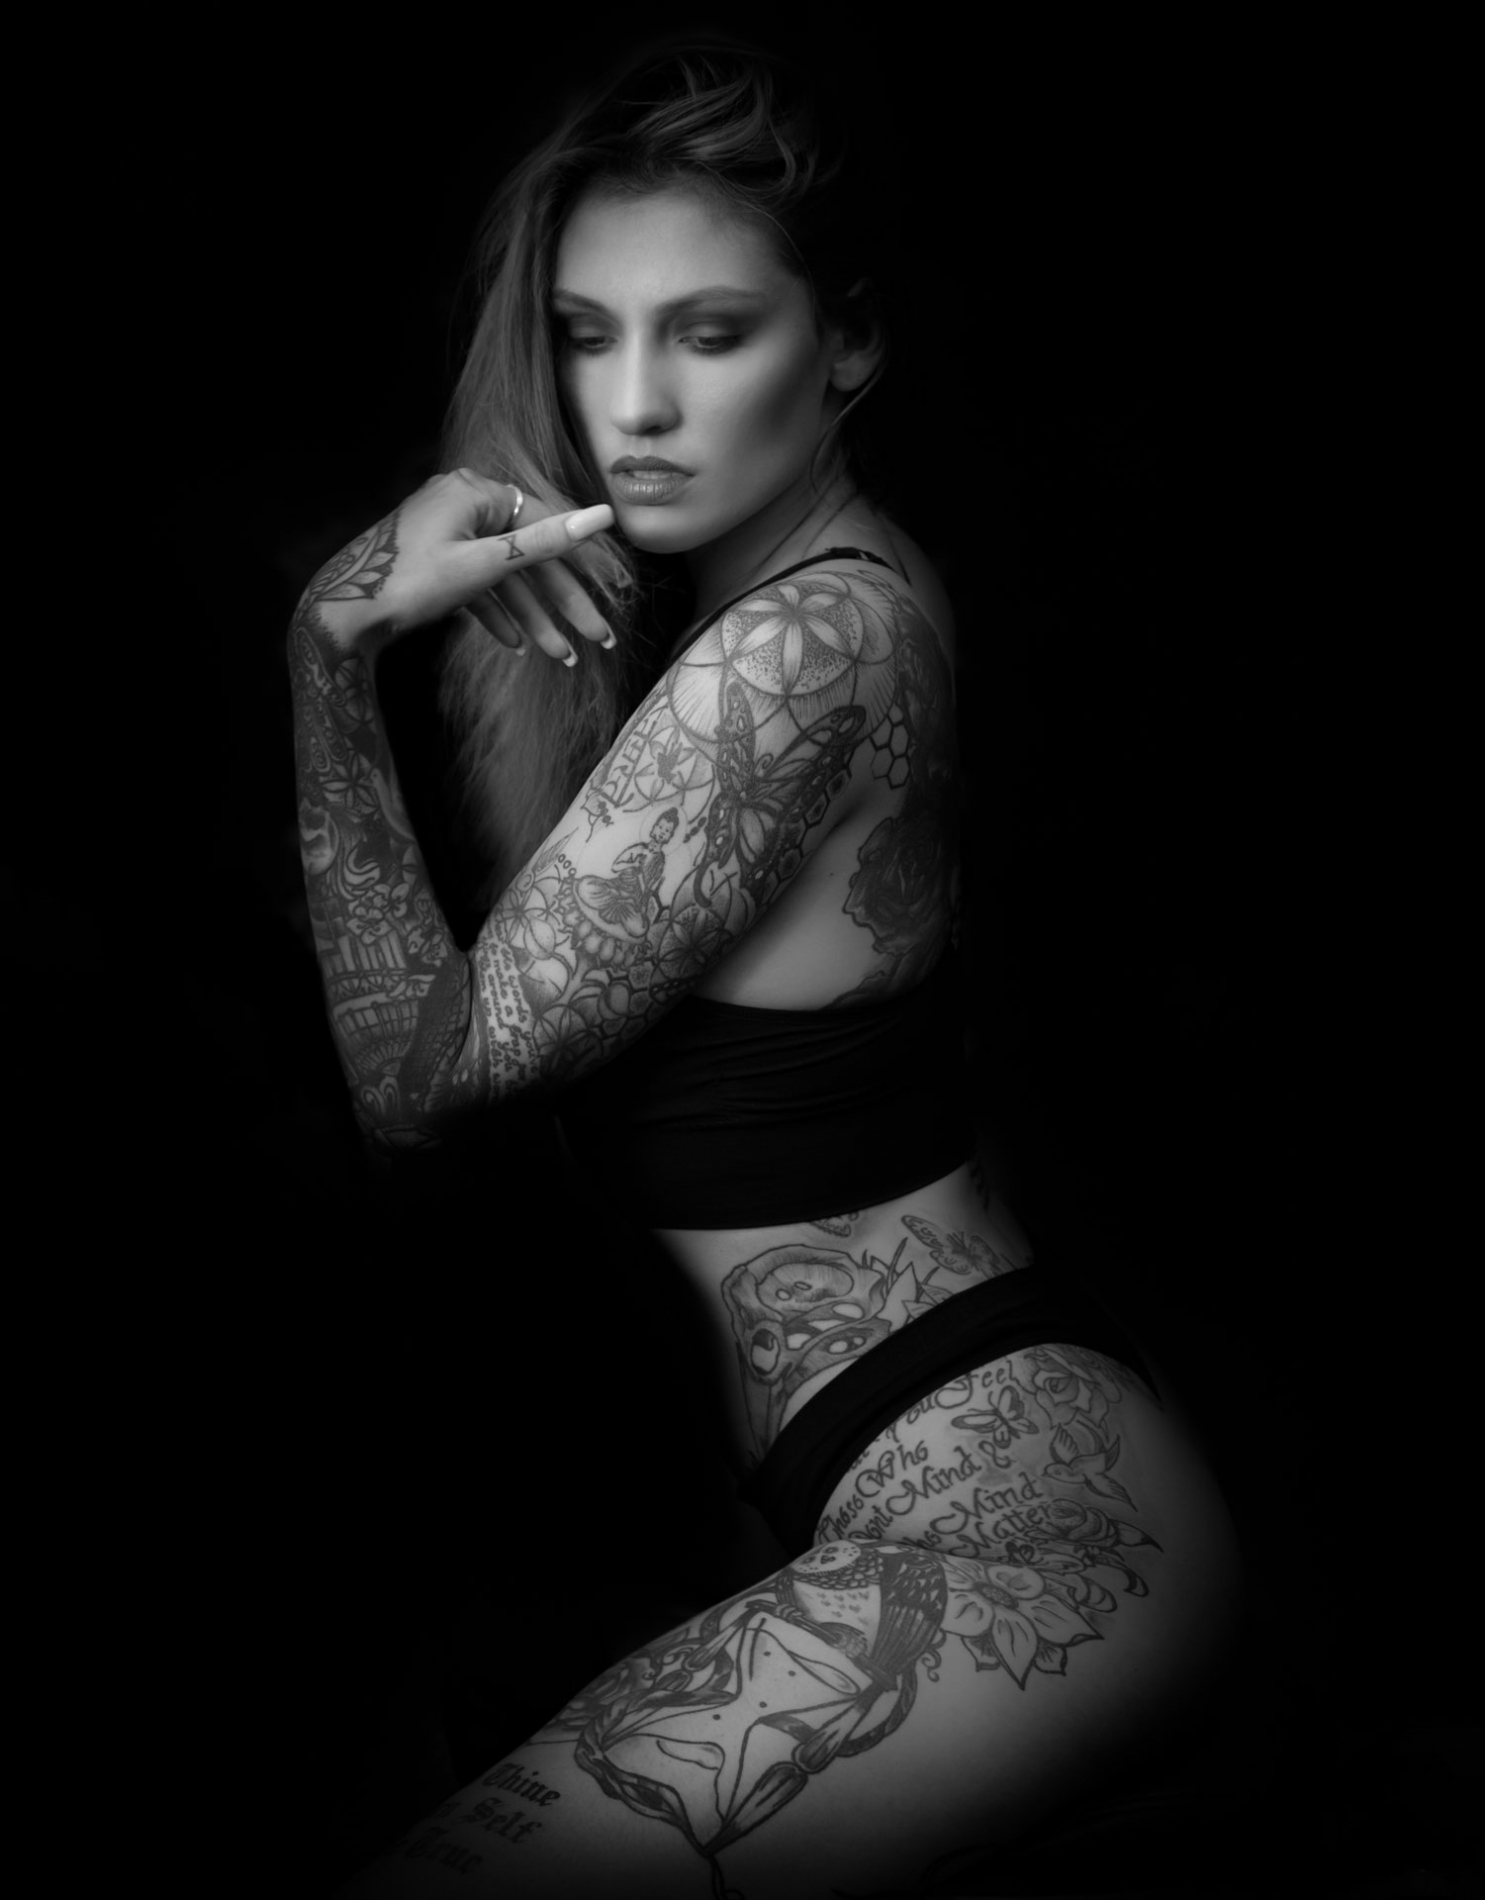 Tattooed-girl